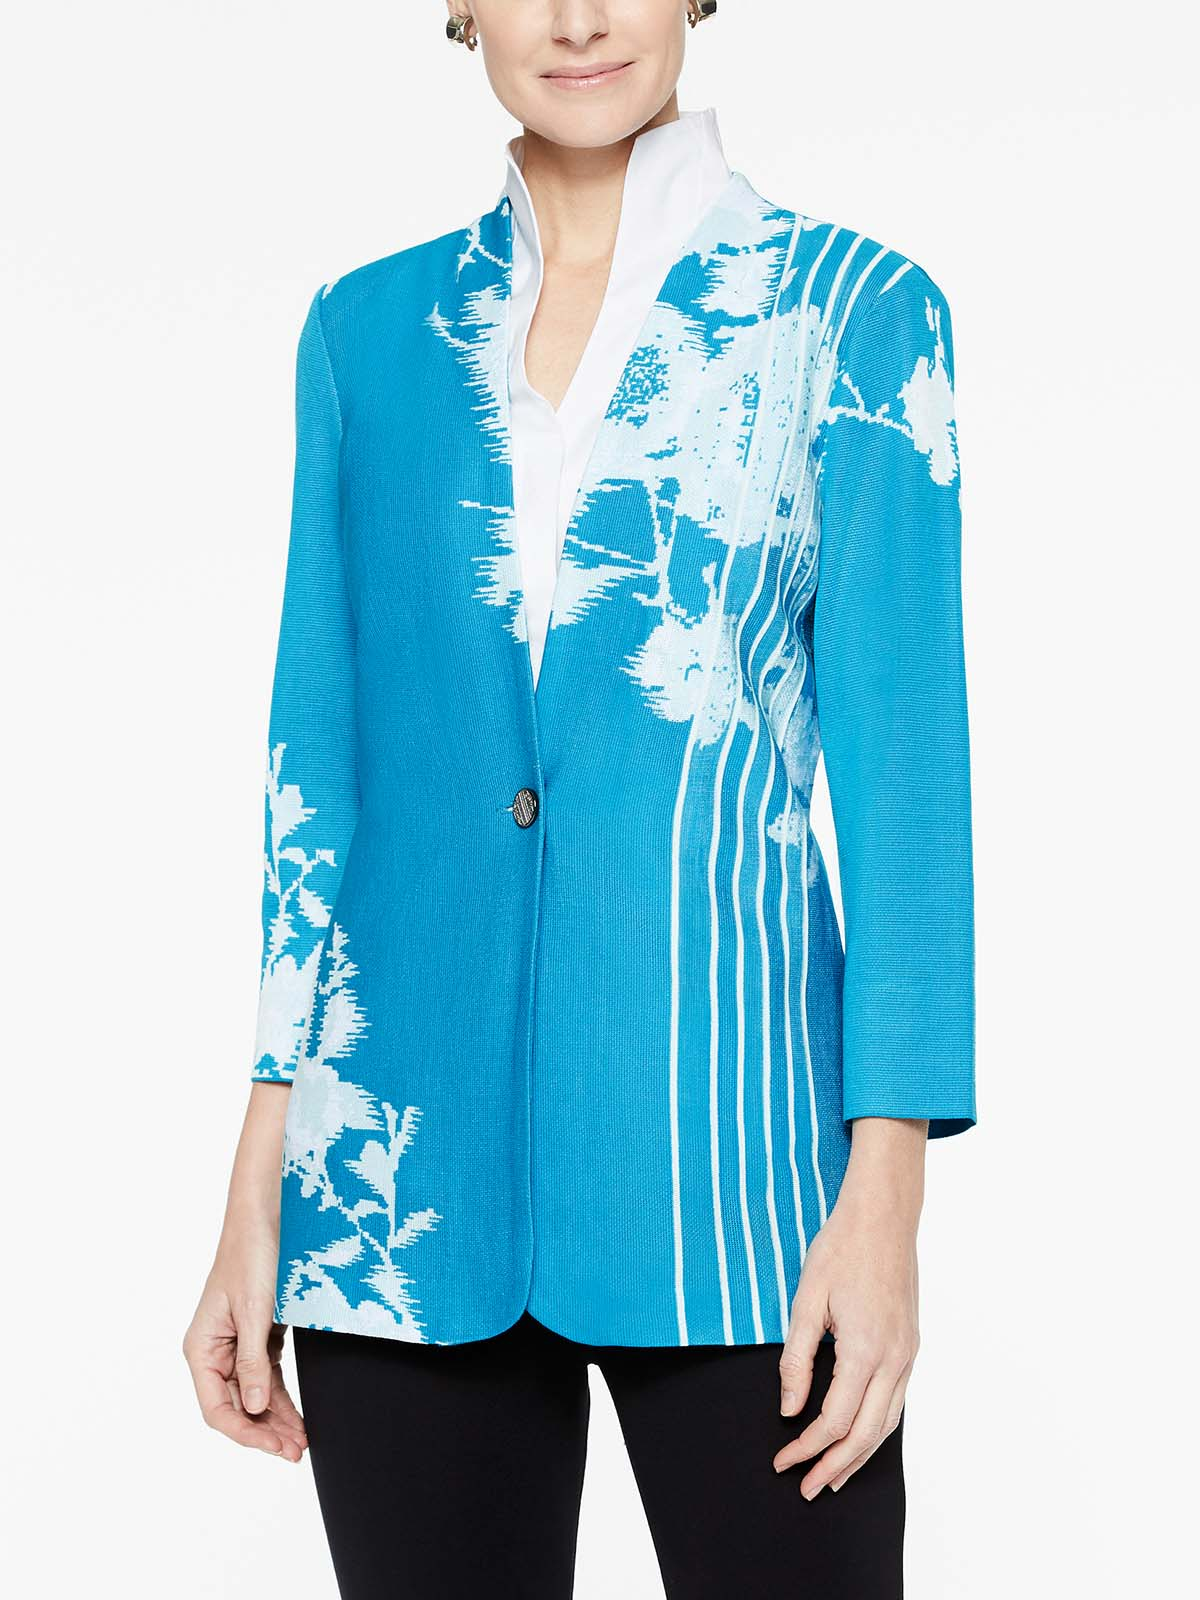 Floral Lines Jacquard Jacket Color Peacock Blue/Sea Glass Blue/White